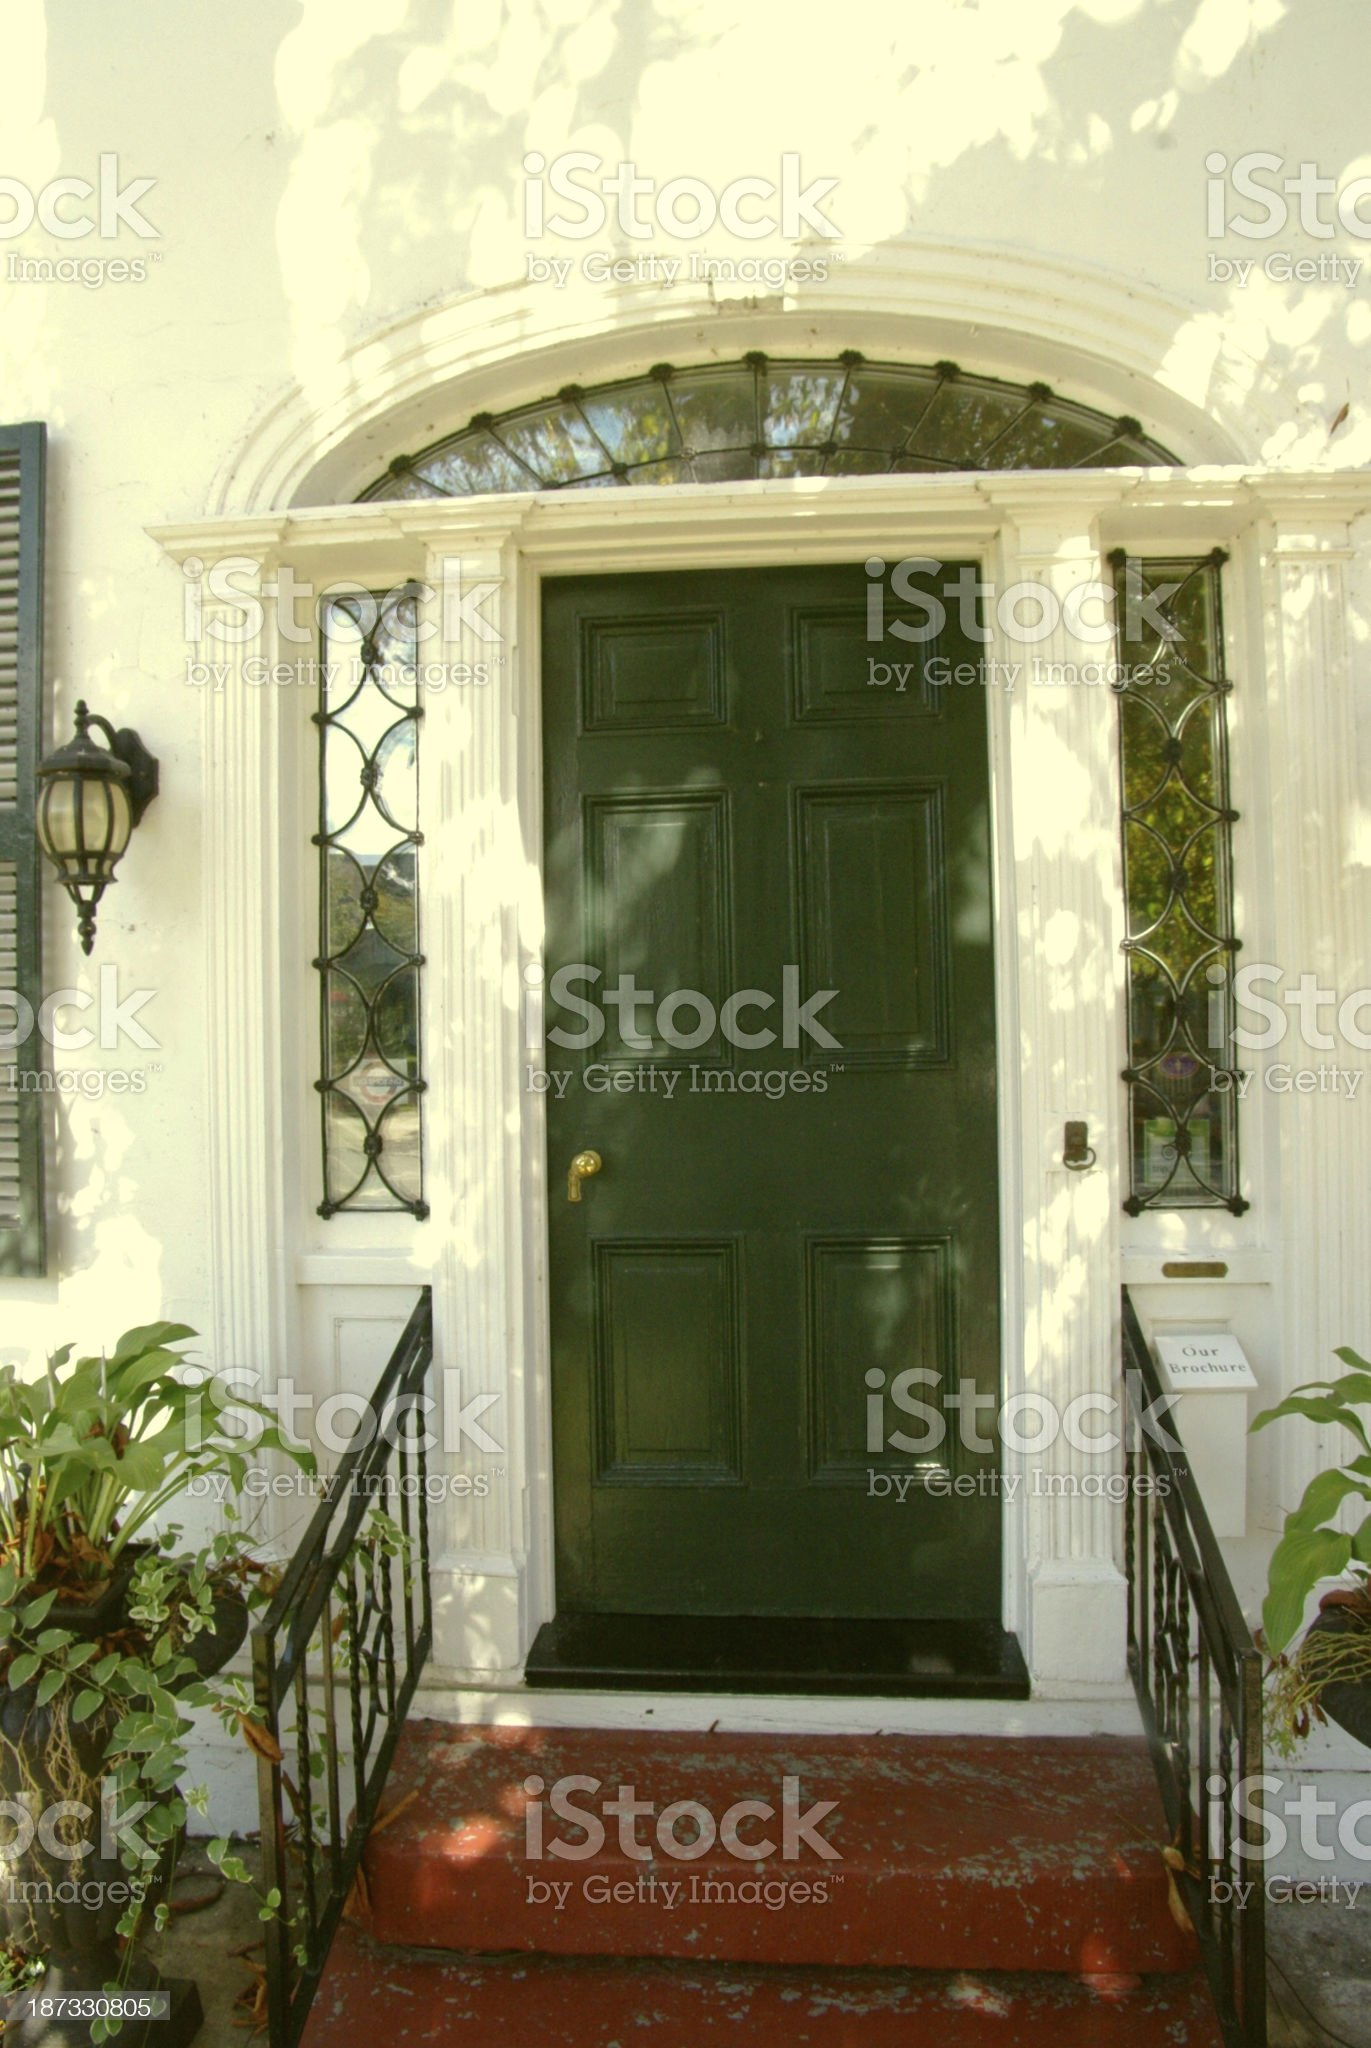 Old house entrance royalty-free stock photo